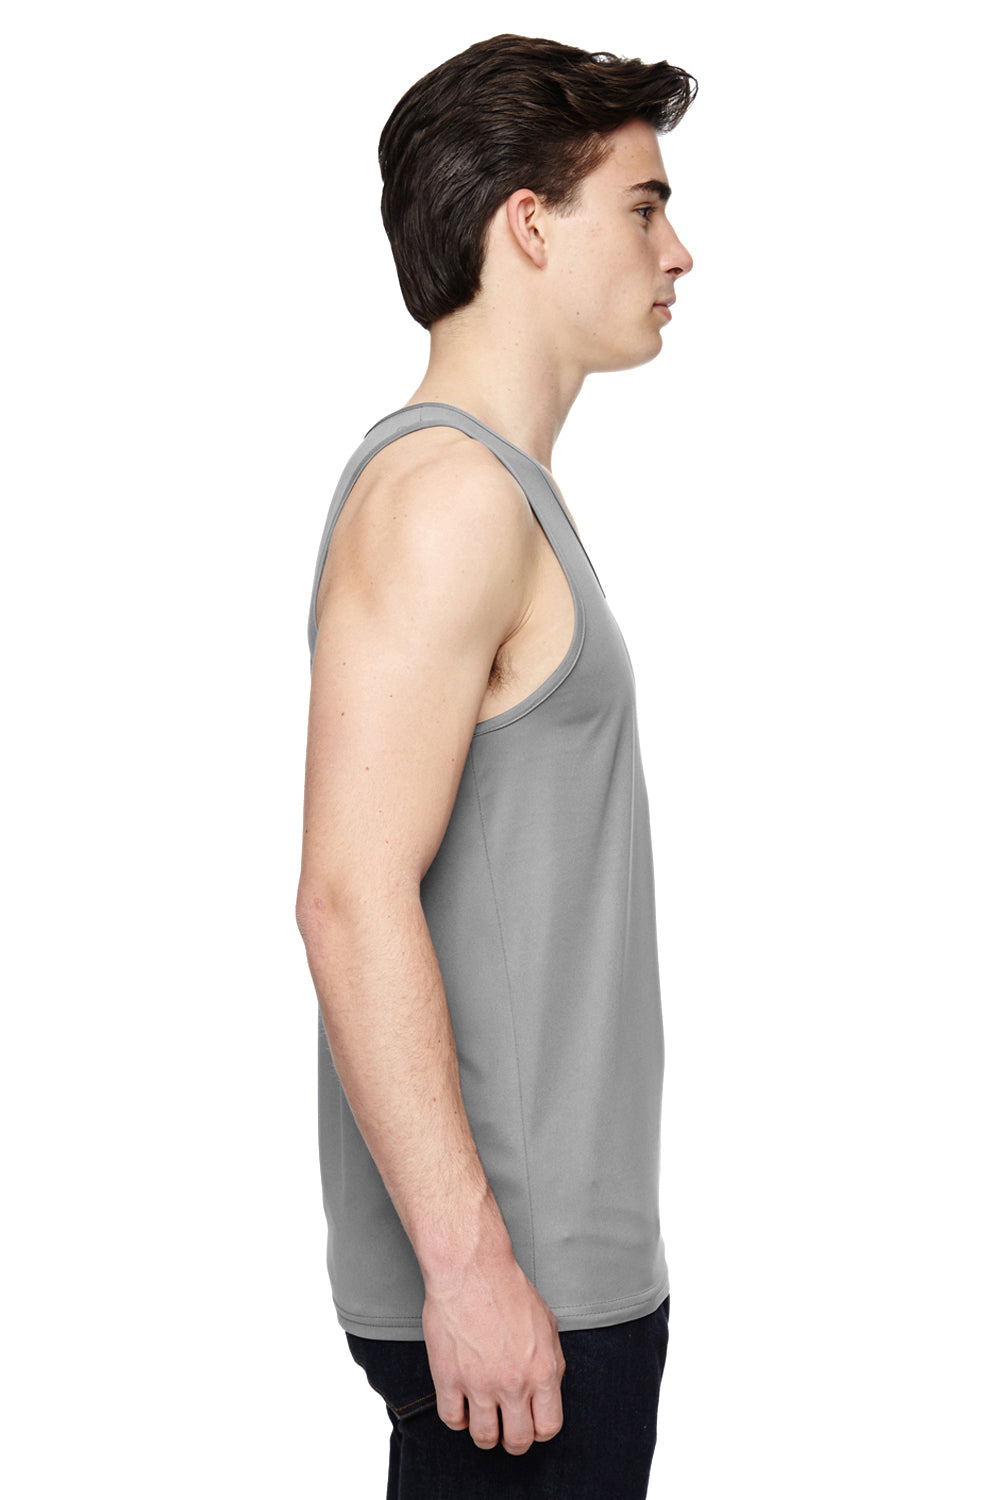 Augusta Sportswear 703 Mens Training Moisture Wicking Tank Top Silver Grey Side